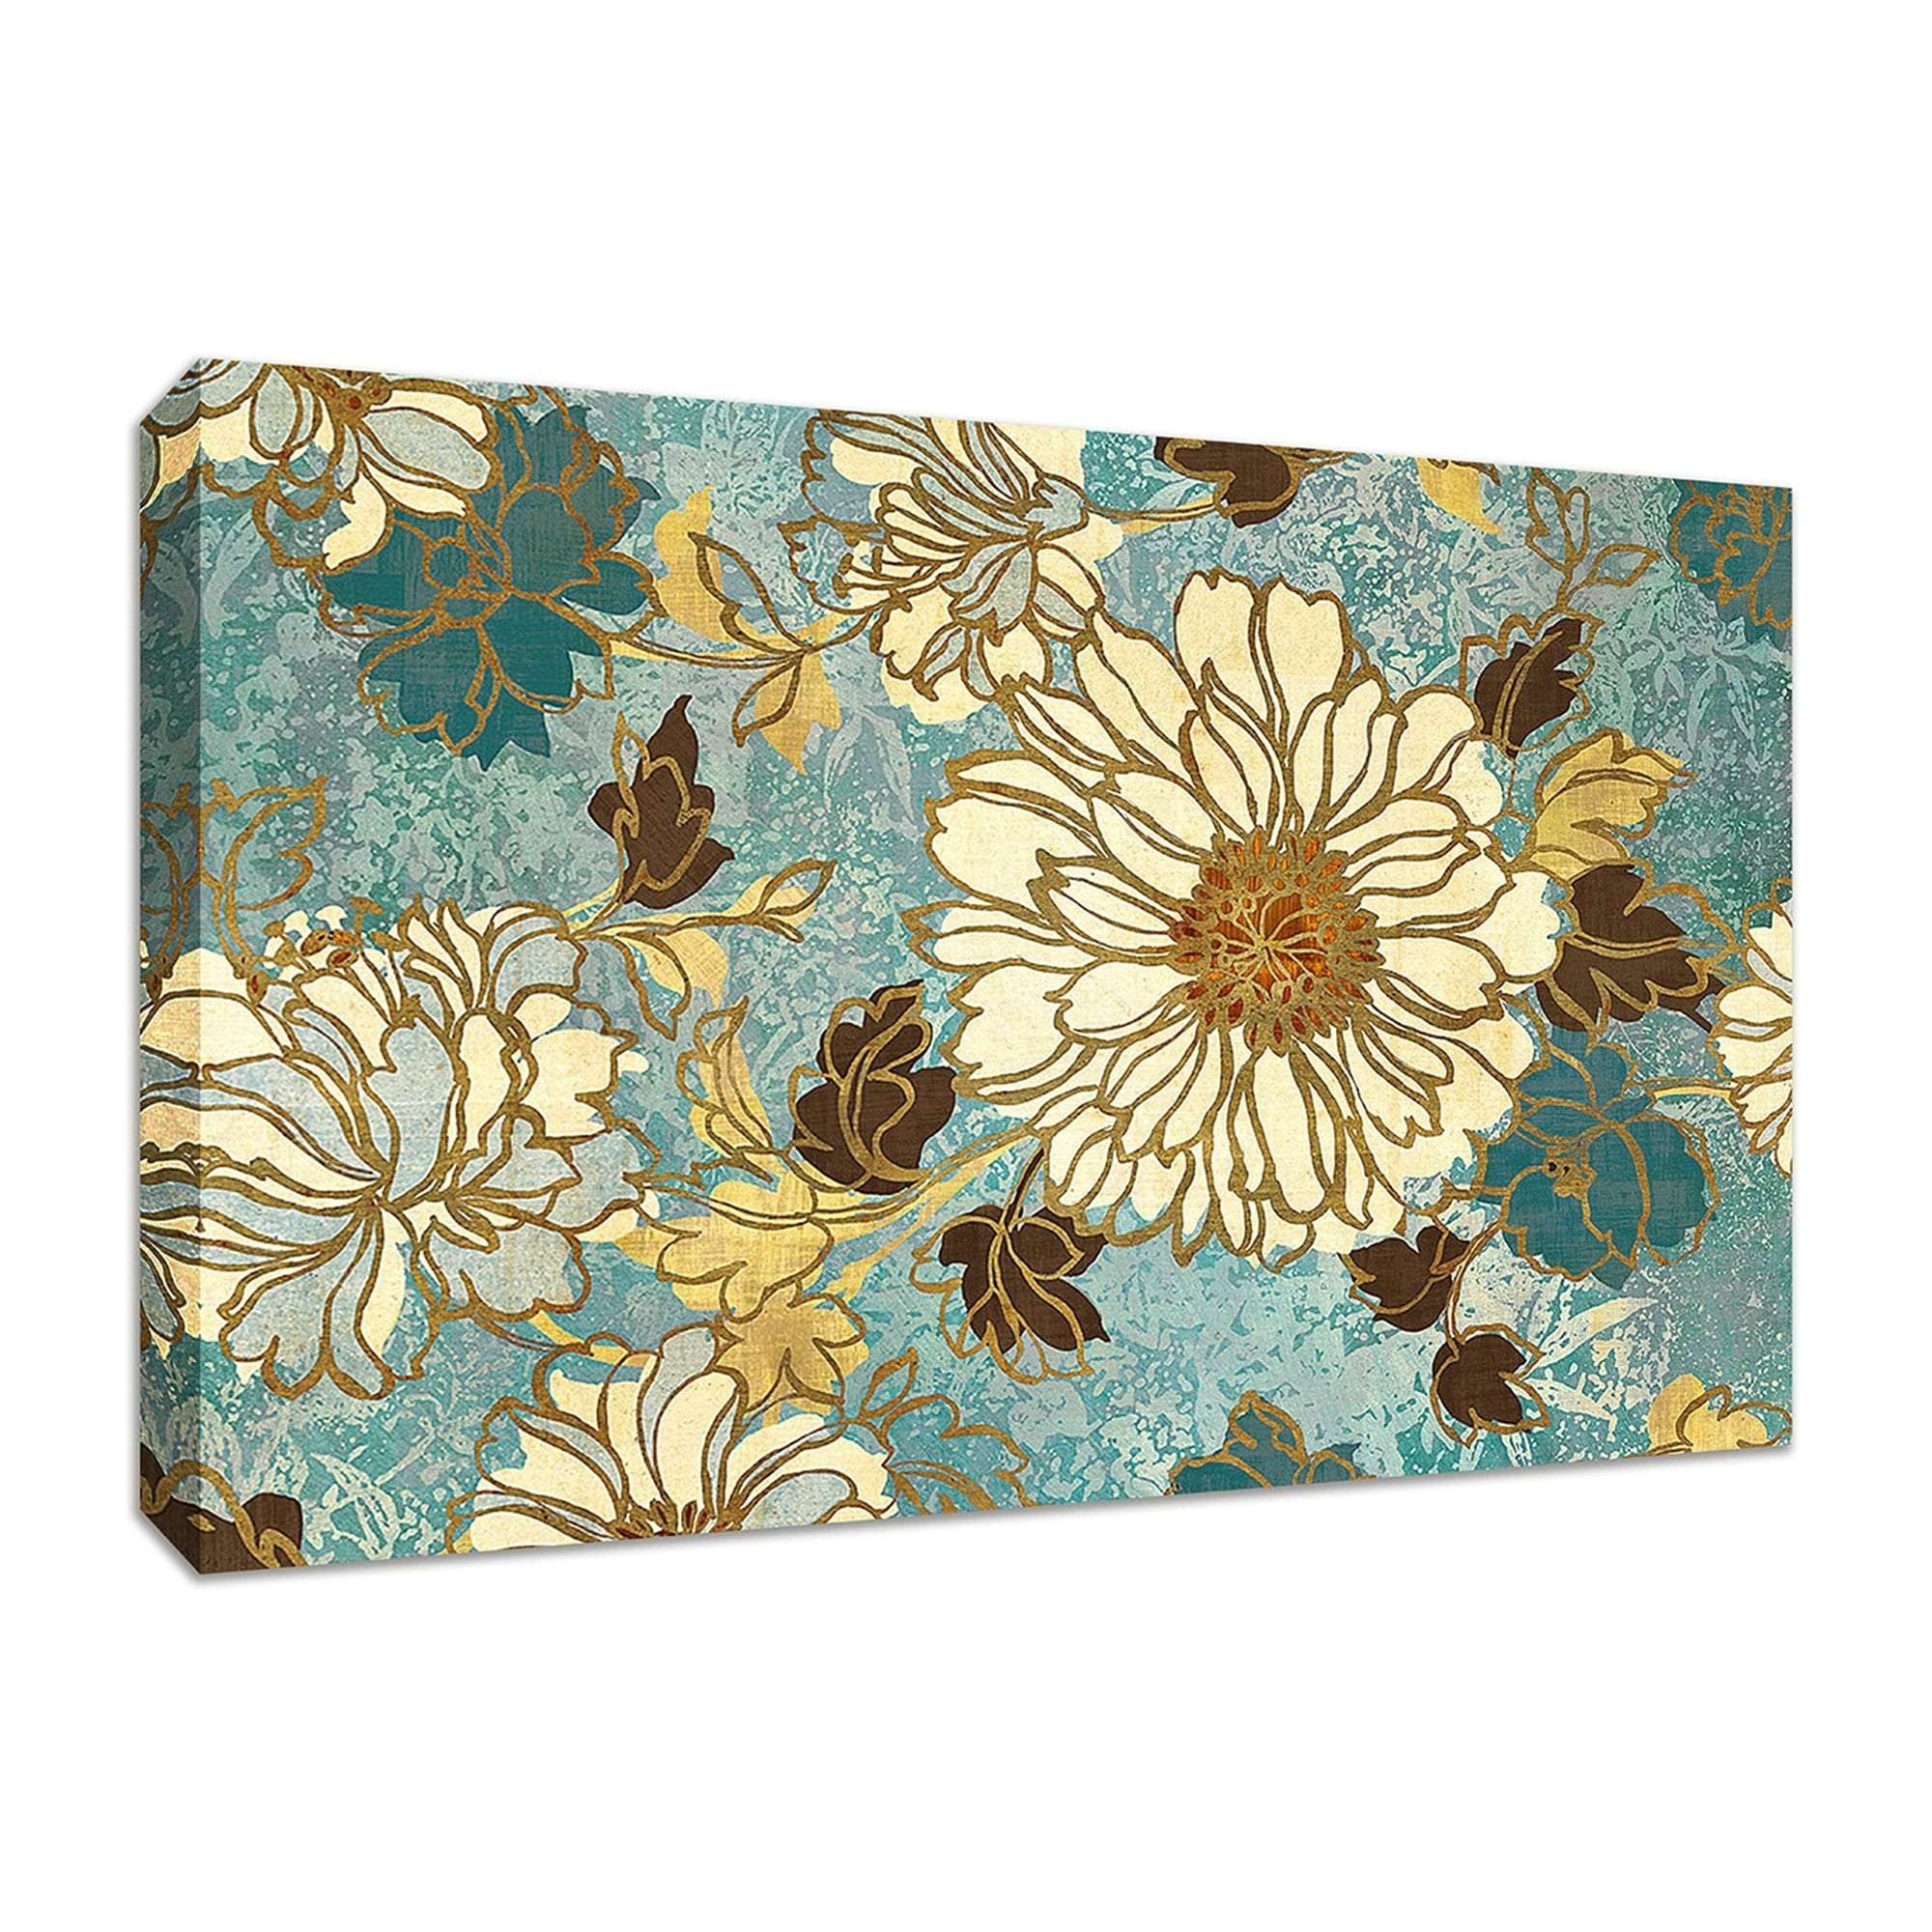 Fine Art Giclee Print on Gallery Wrap Canvas Wall Flower III By Wild Apple Portfolio Ready to Hang